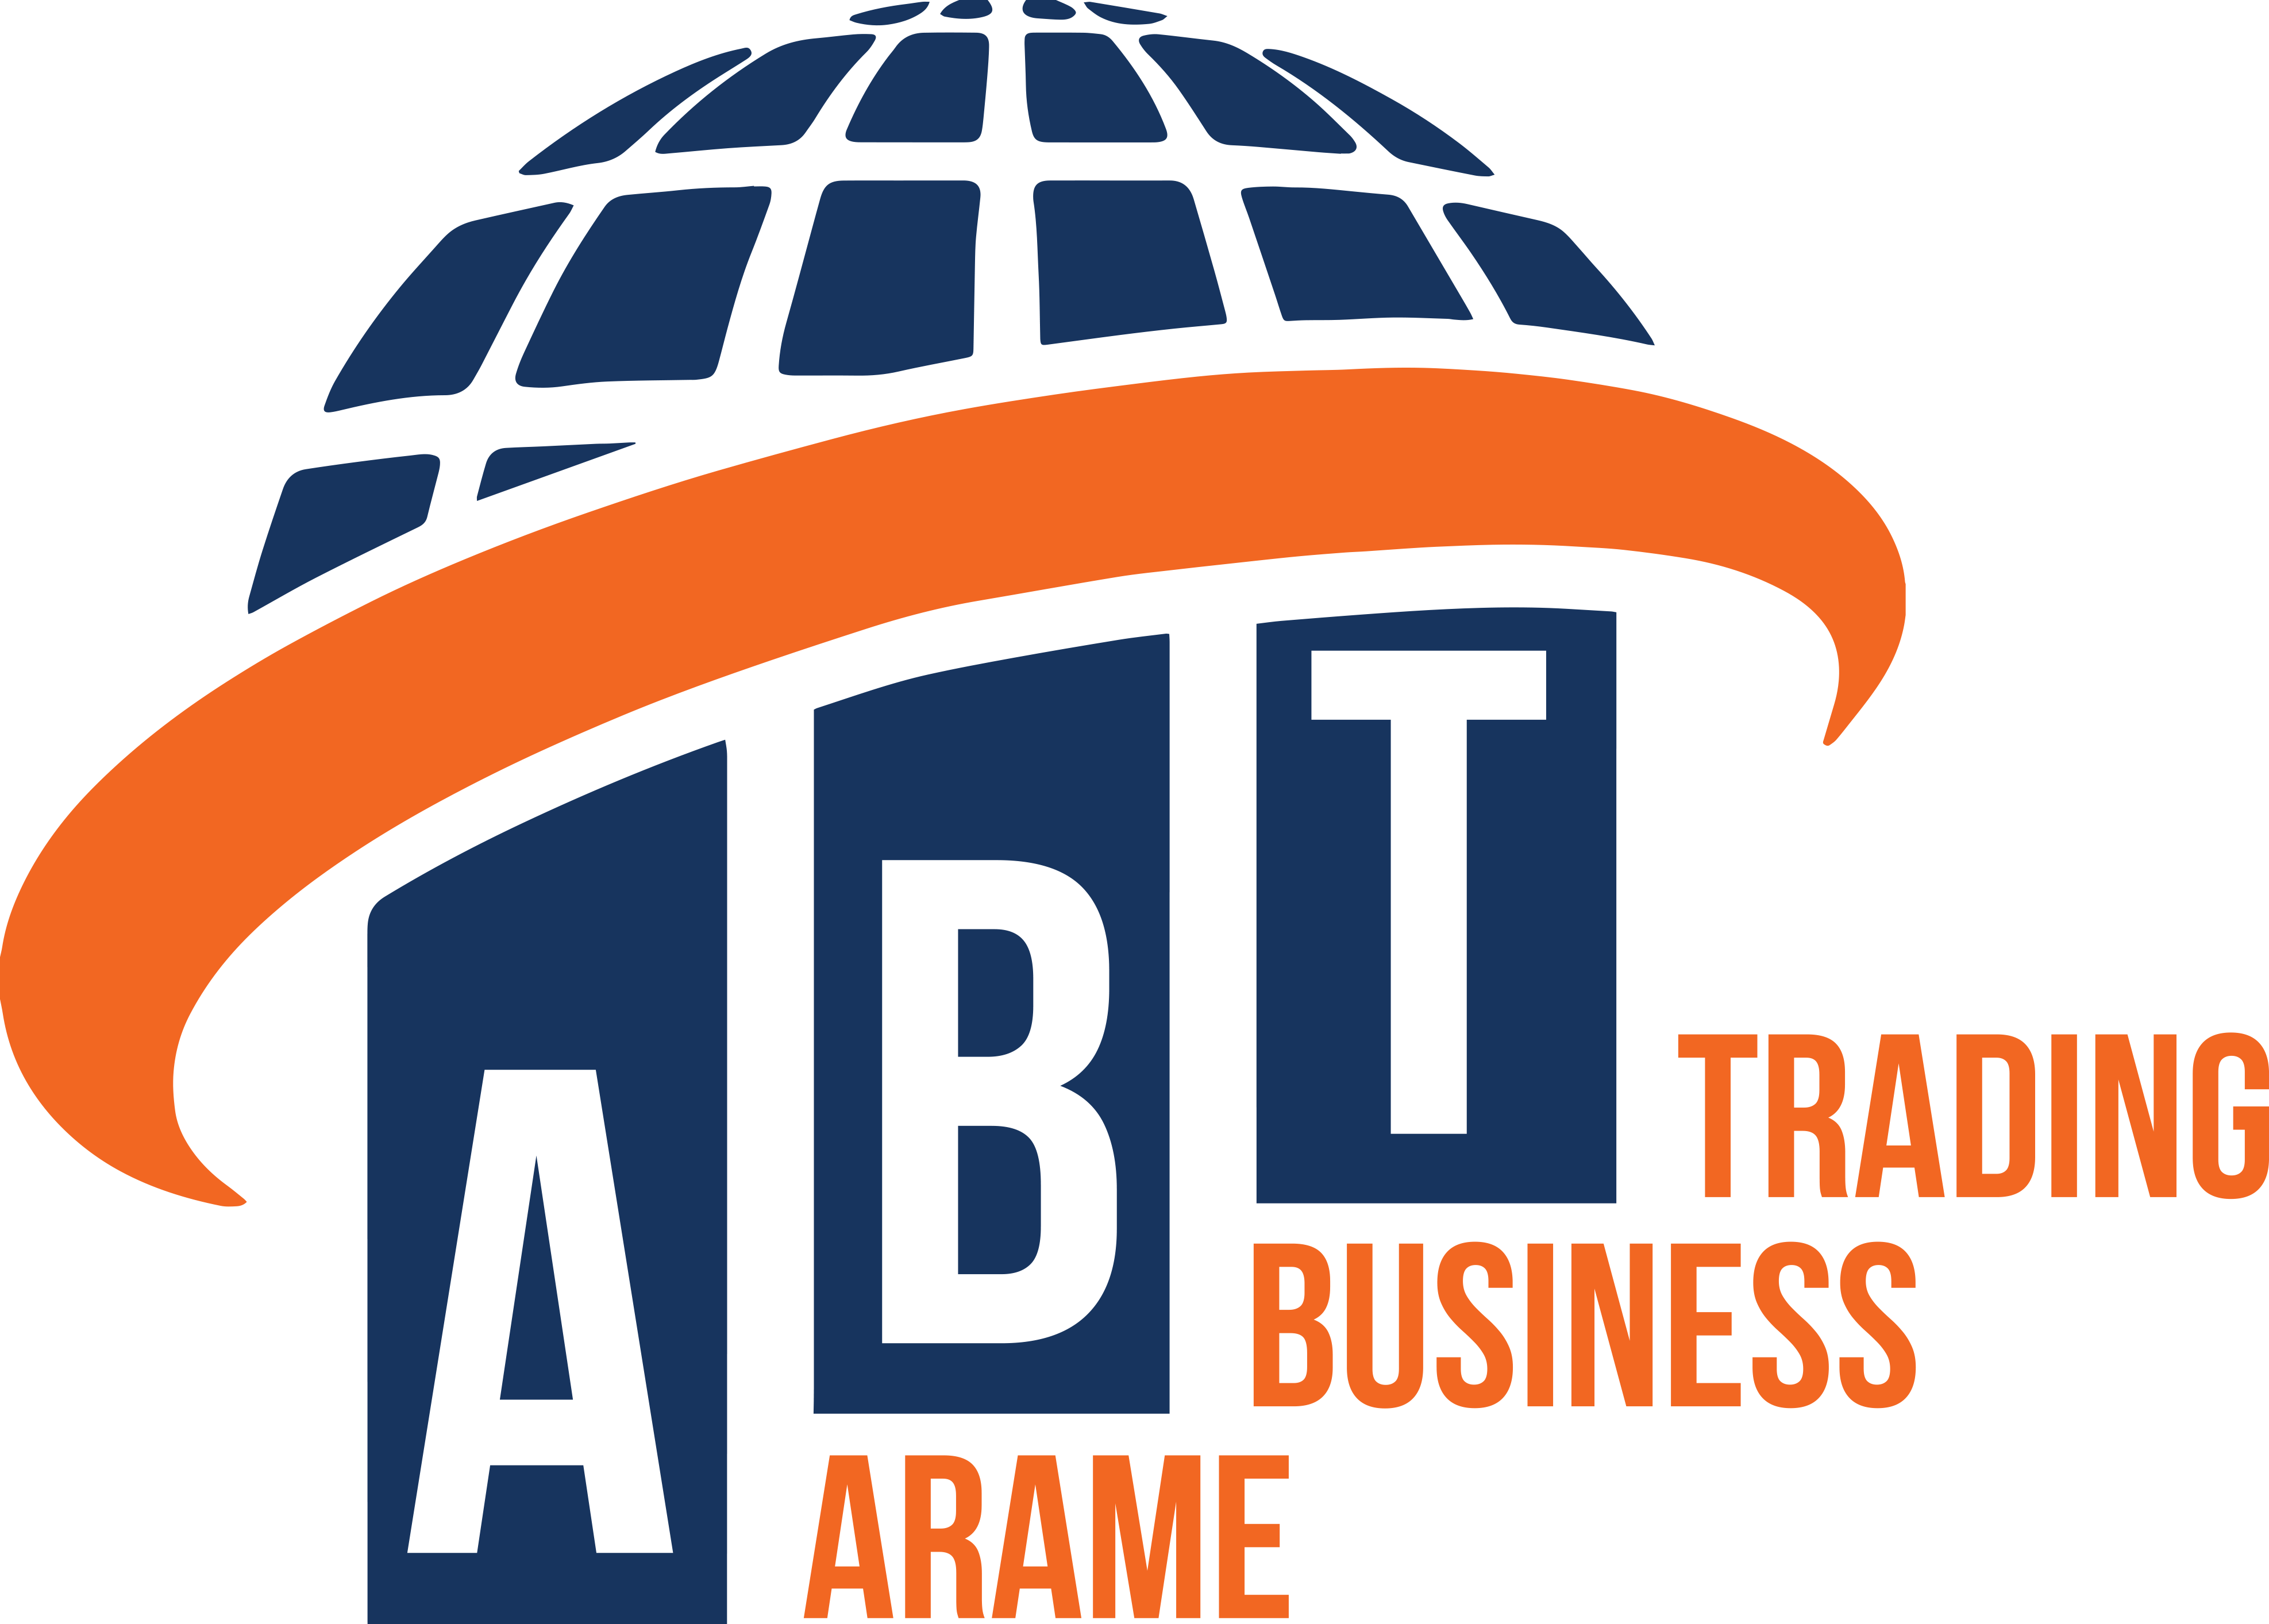 Arame Business Trading